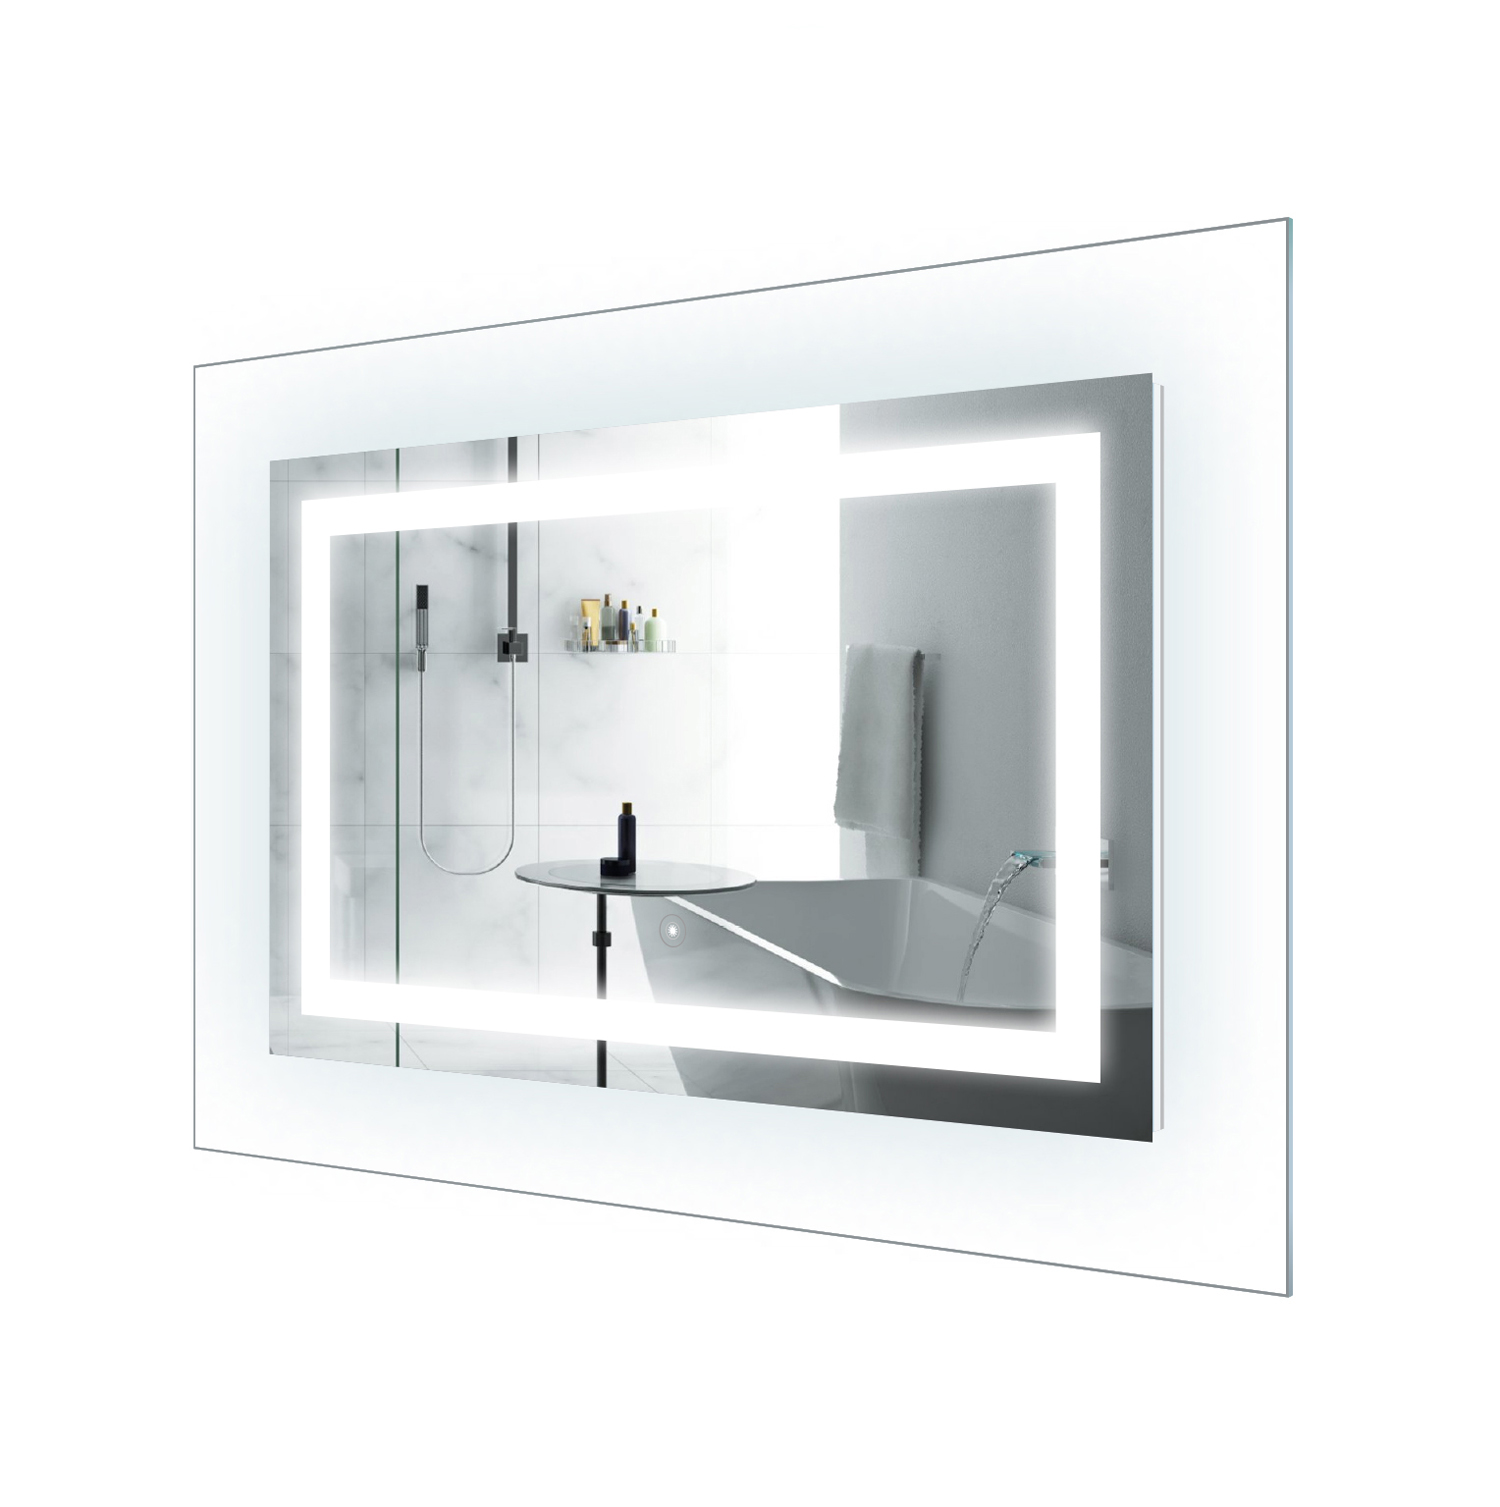 LED Lighted 42 Inch x 30 Inch Bathroom Mirror With Glass Frame ...